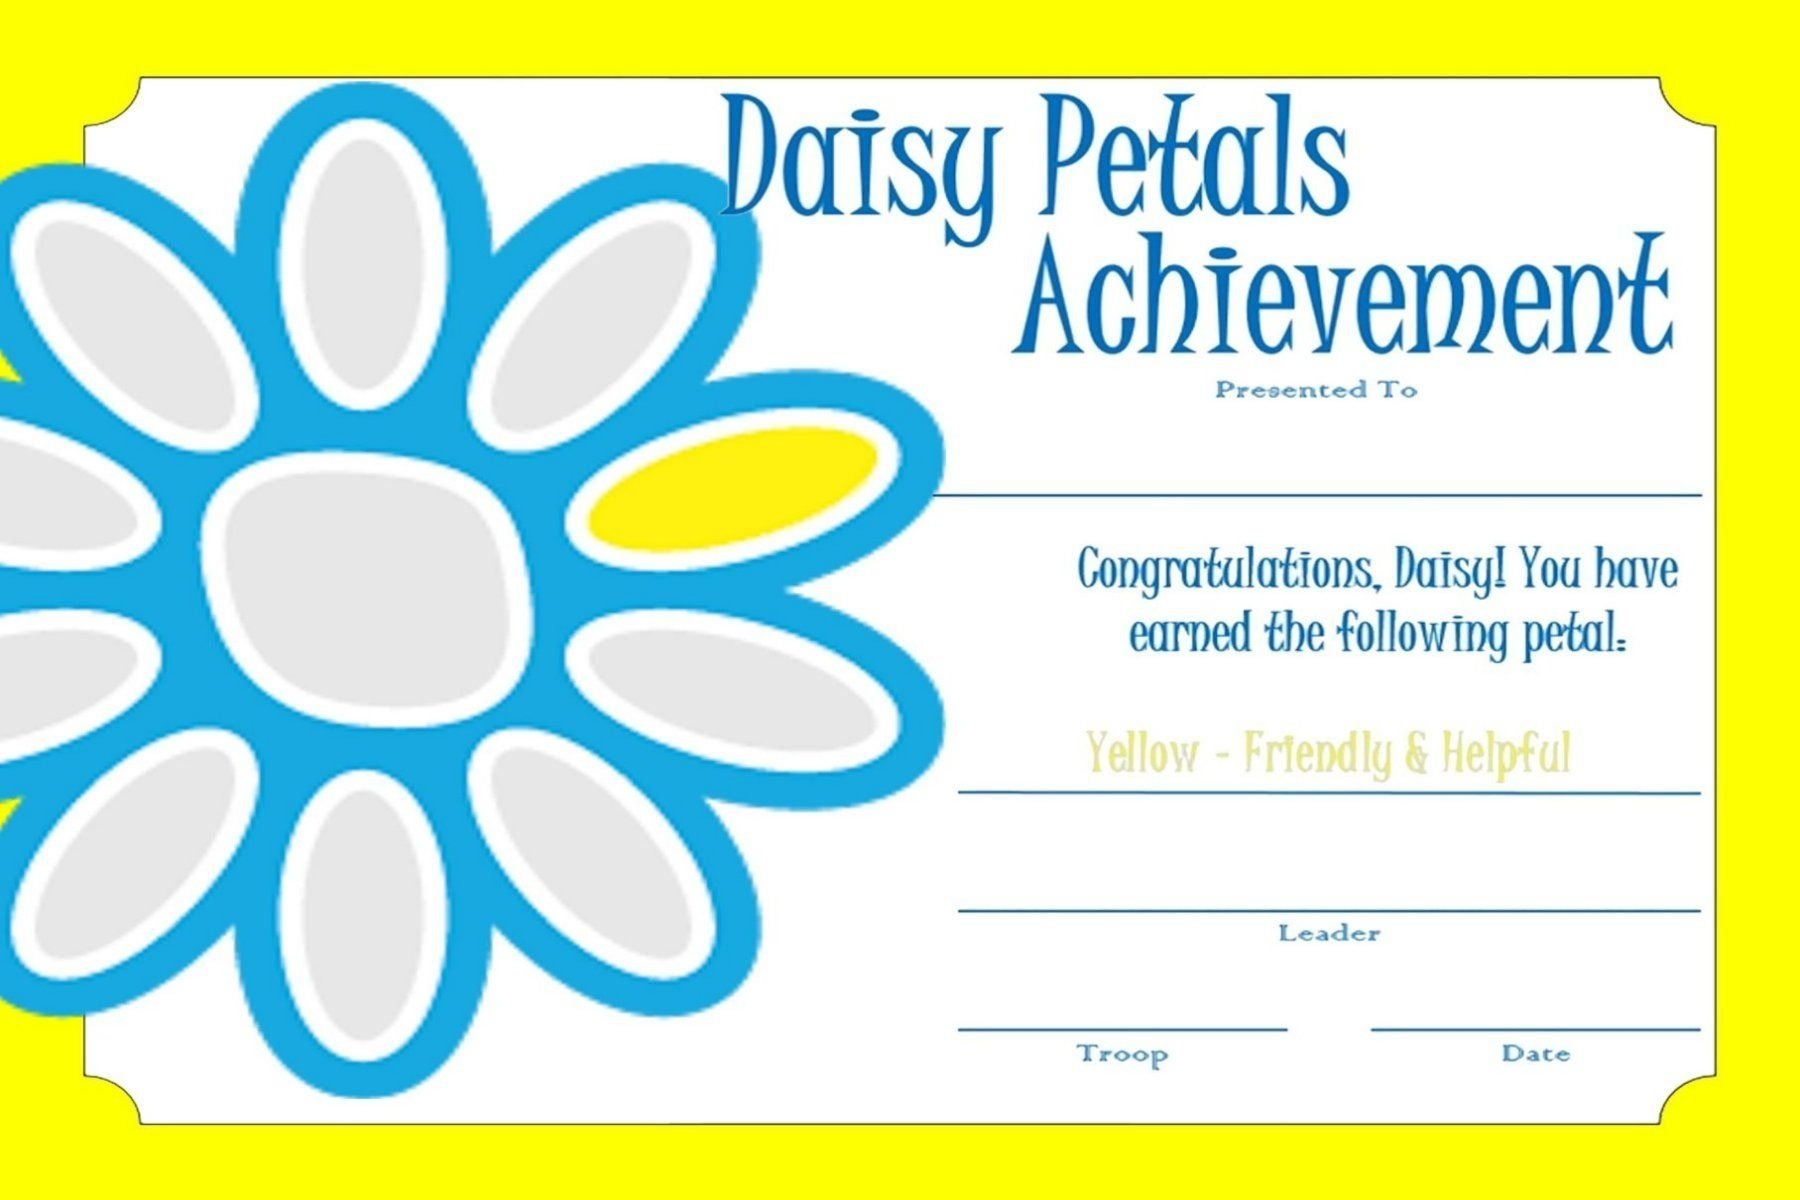 10 Attractive Considerate And Caring Daisy Petal Ideas girl scout daisy certificate sunny petal daisy scouts 1